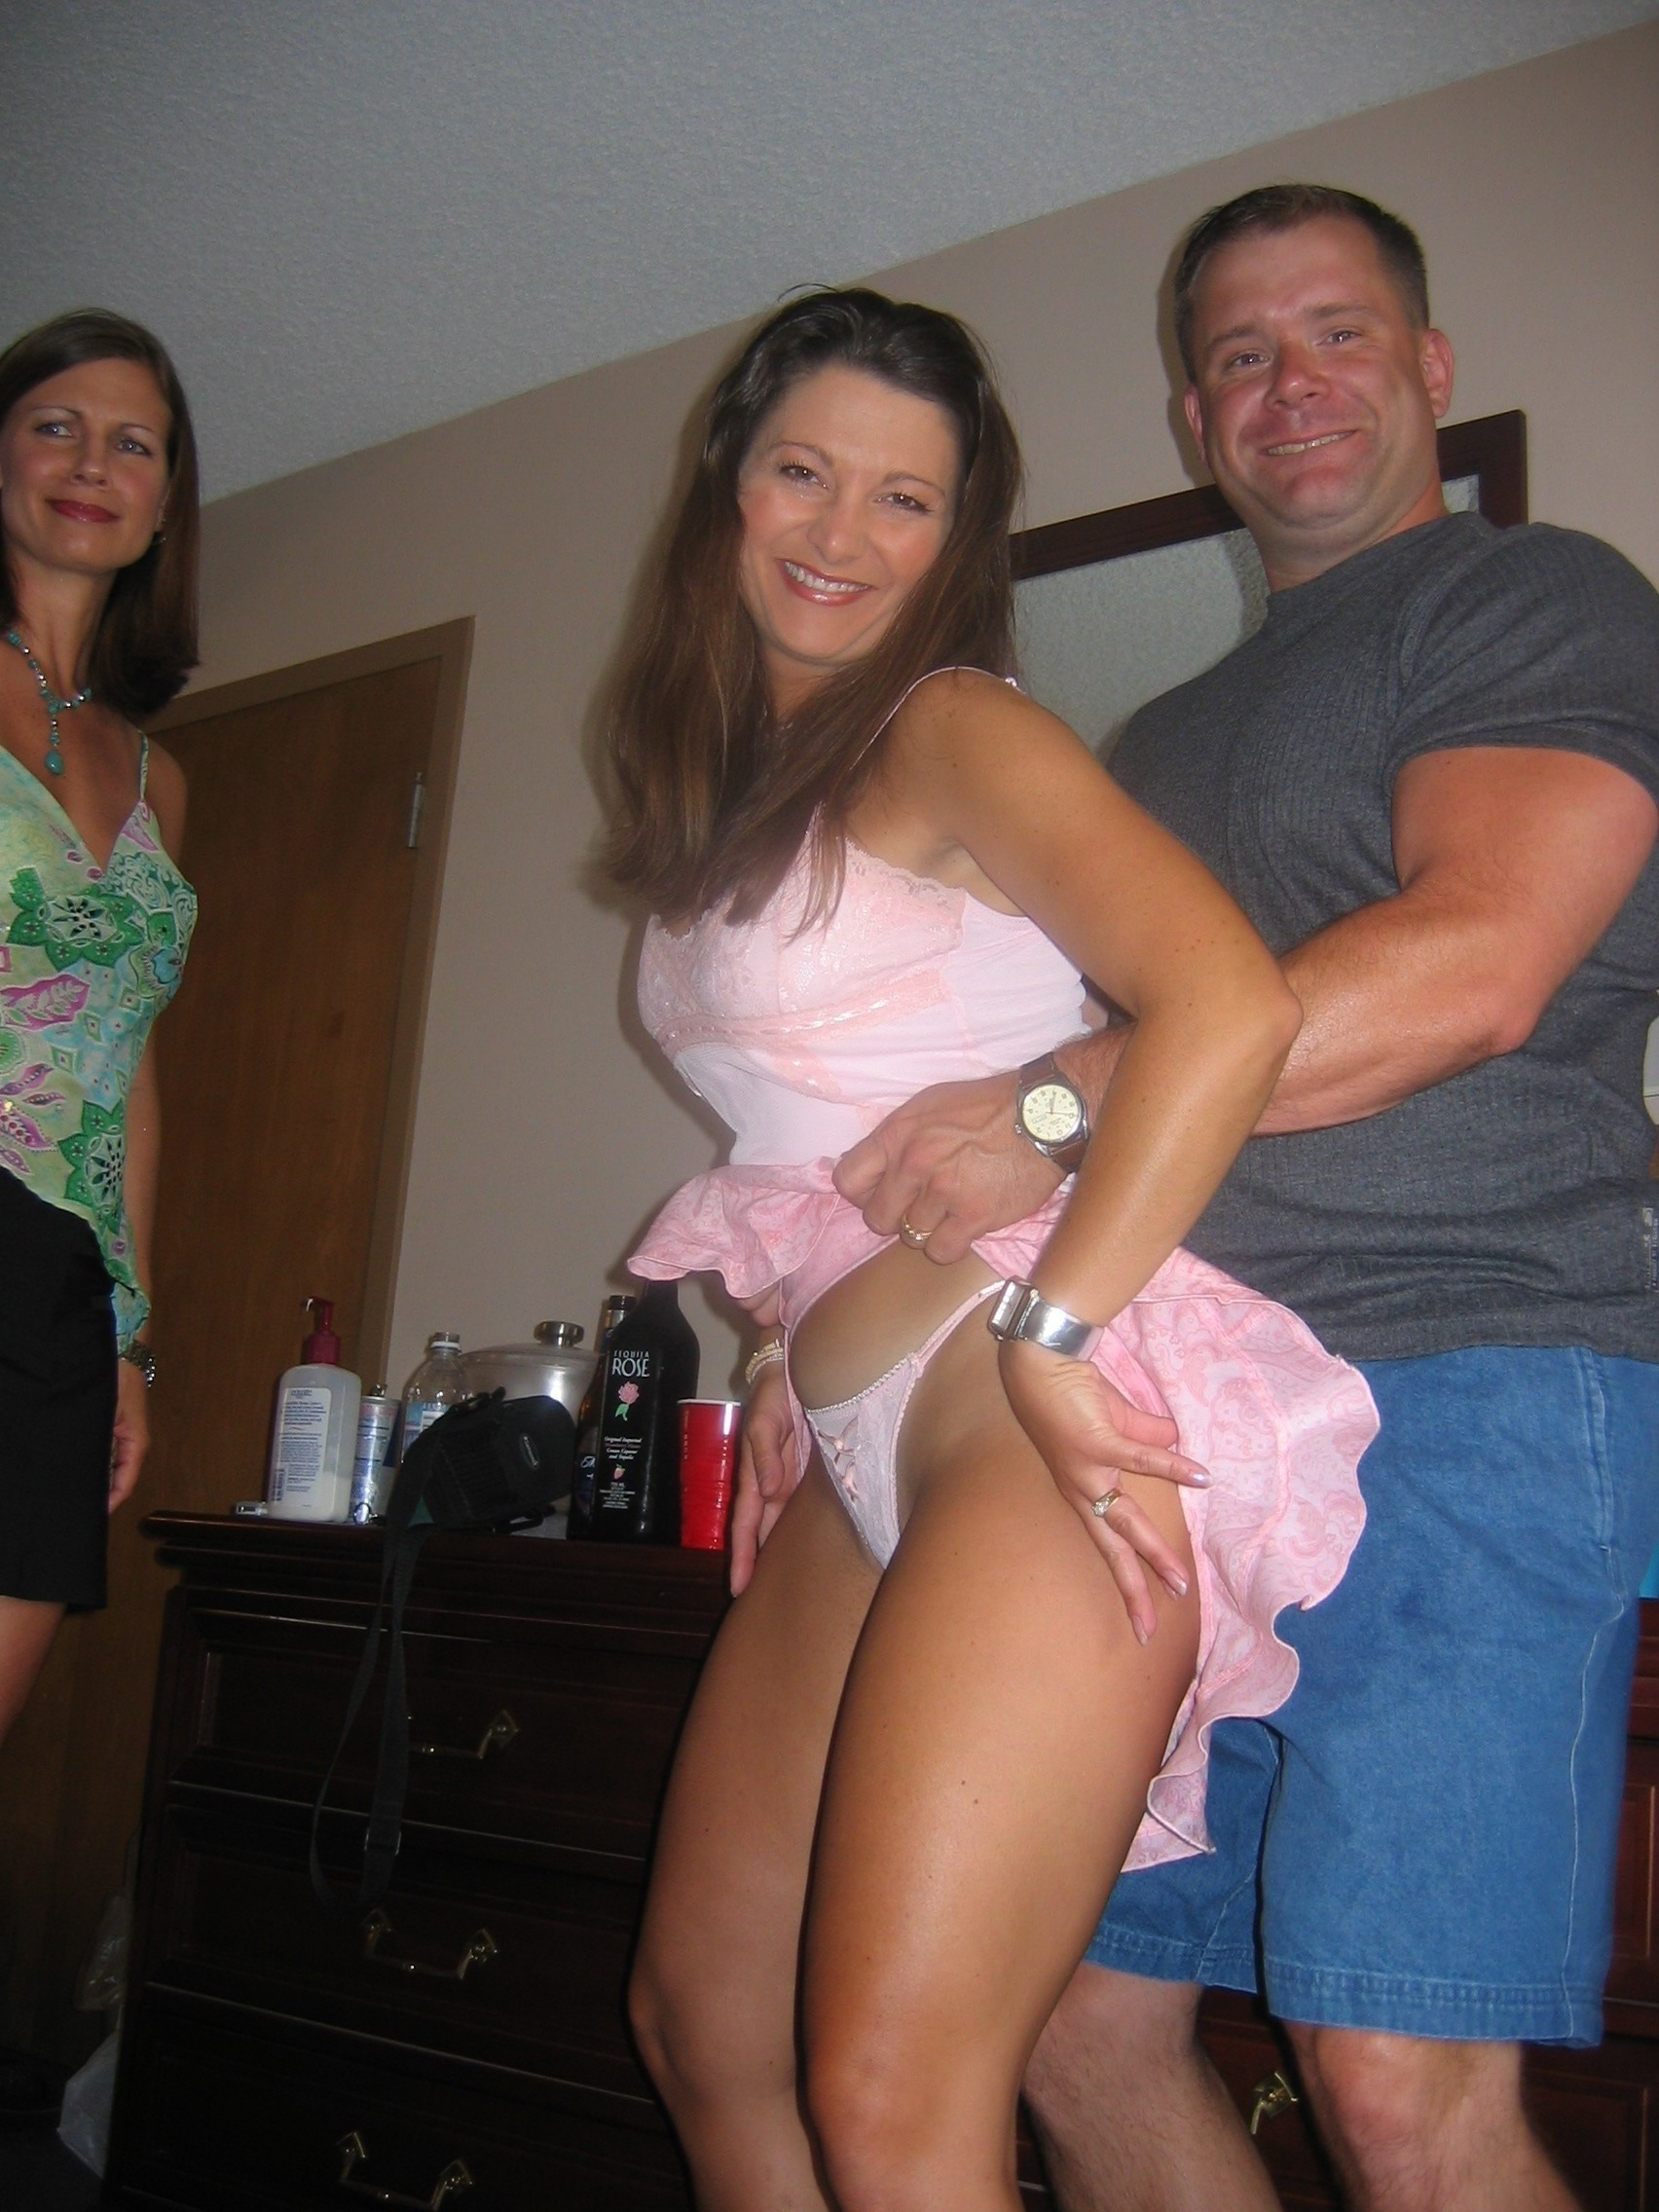 Drunk Mom Upskirt Amateur Photos Porn Pictures - Beemtubecom-8942